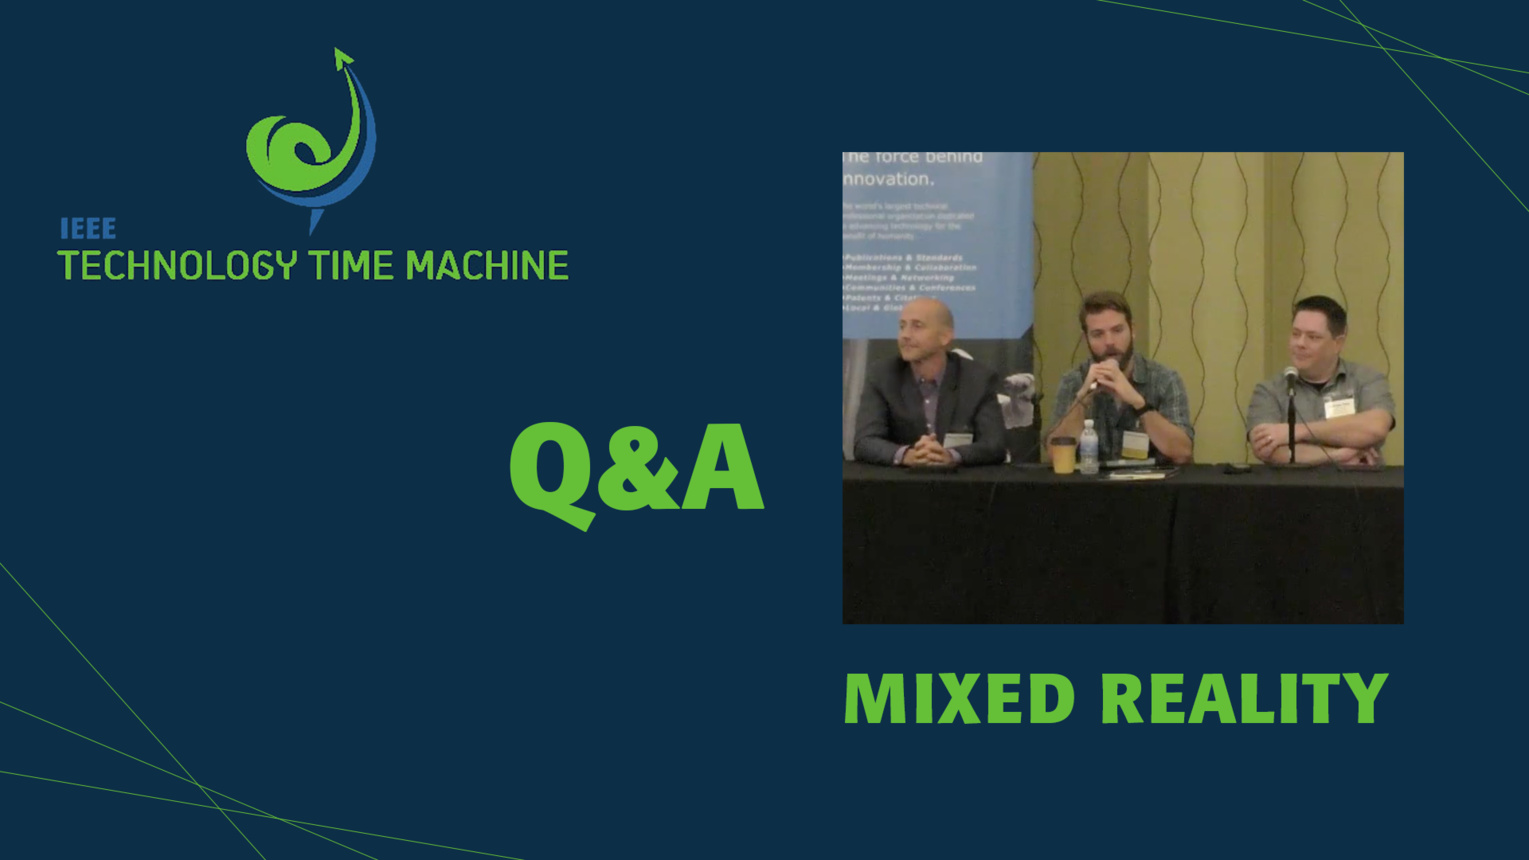 Q&A: Mixed Reality Panel - TTM 2018